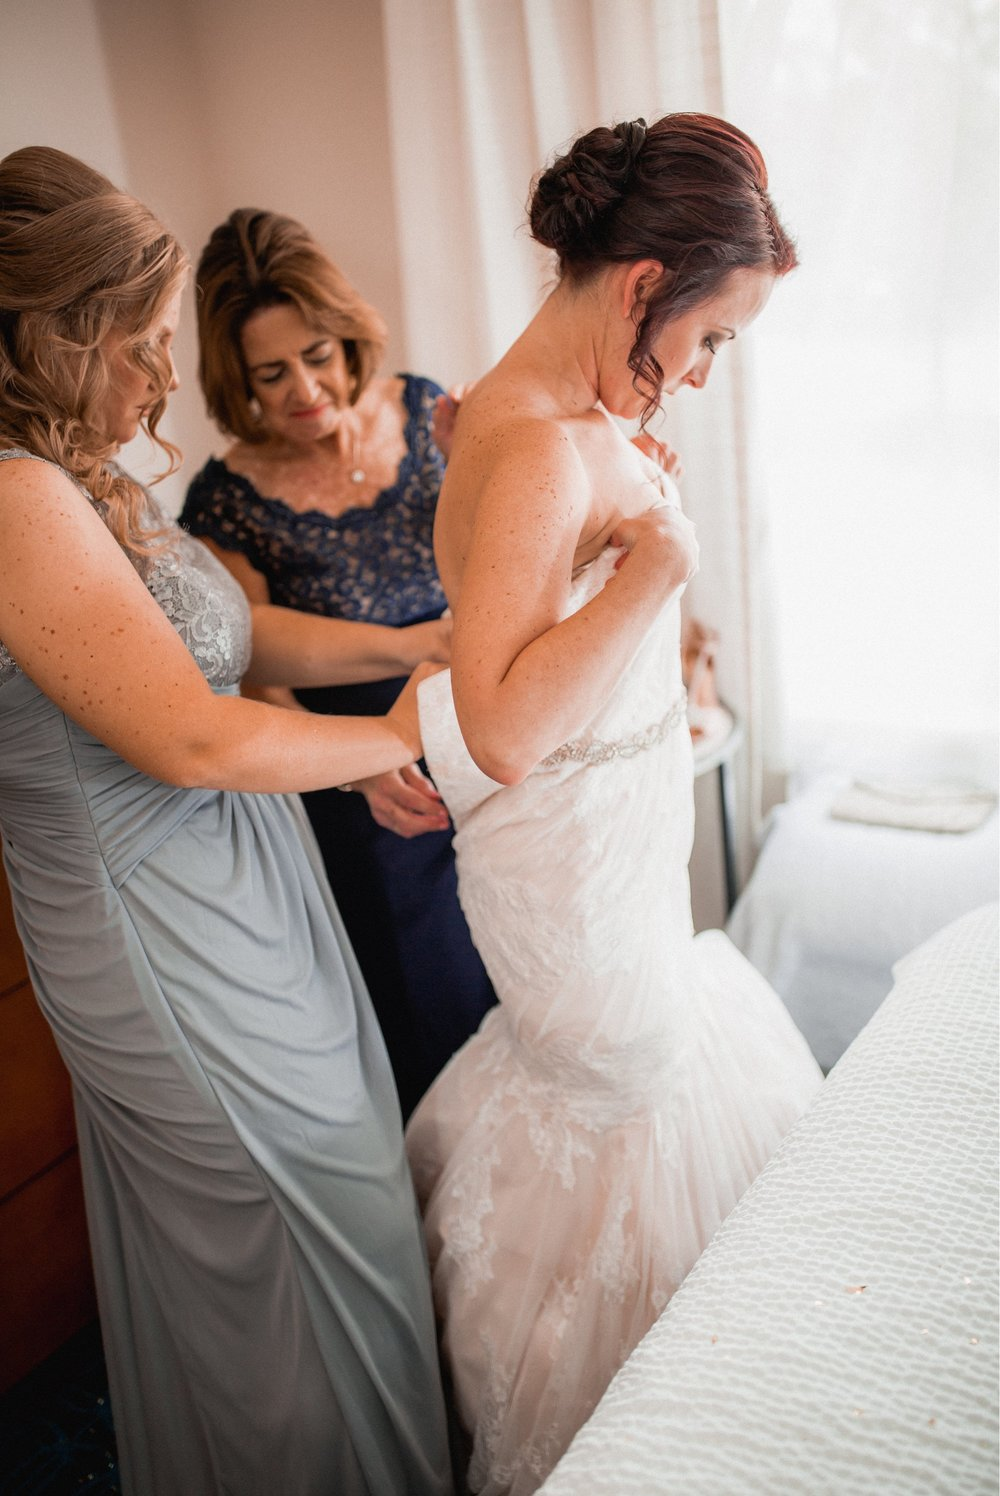 Romantic Pink Spring Wedding - Katie + Joe by Orlando Wedding Photographer Shaina DeCiryan 16.jpg